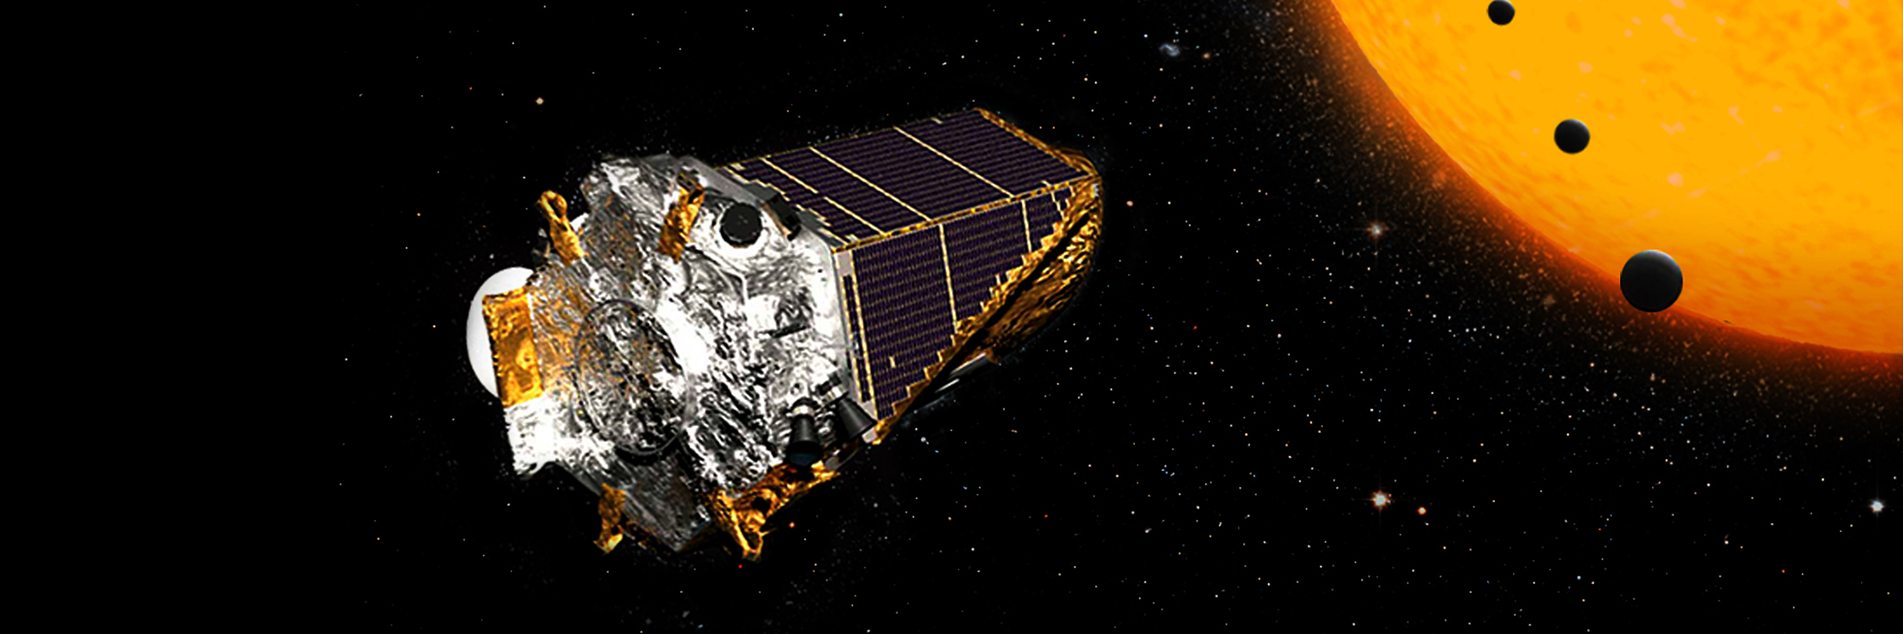 Kepler Space Telescope on its K2 mission (NASA/JPL-Caltech)